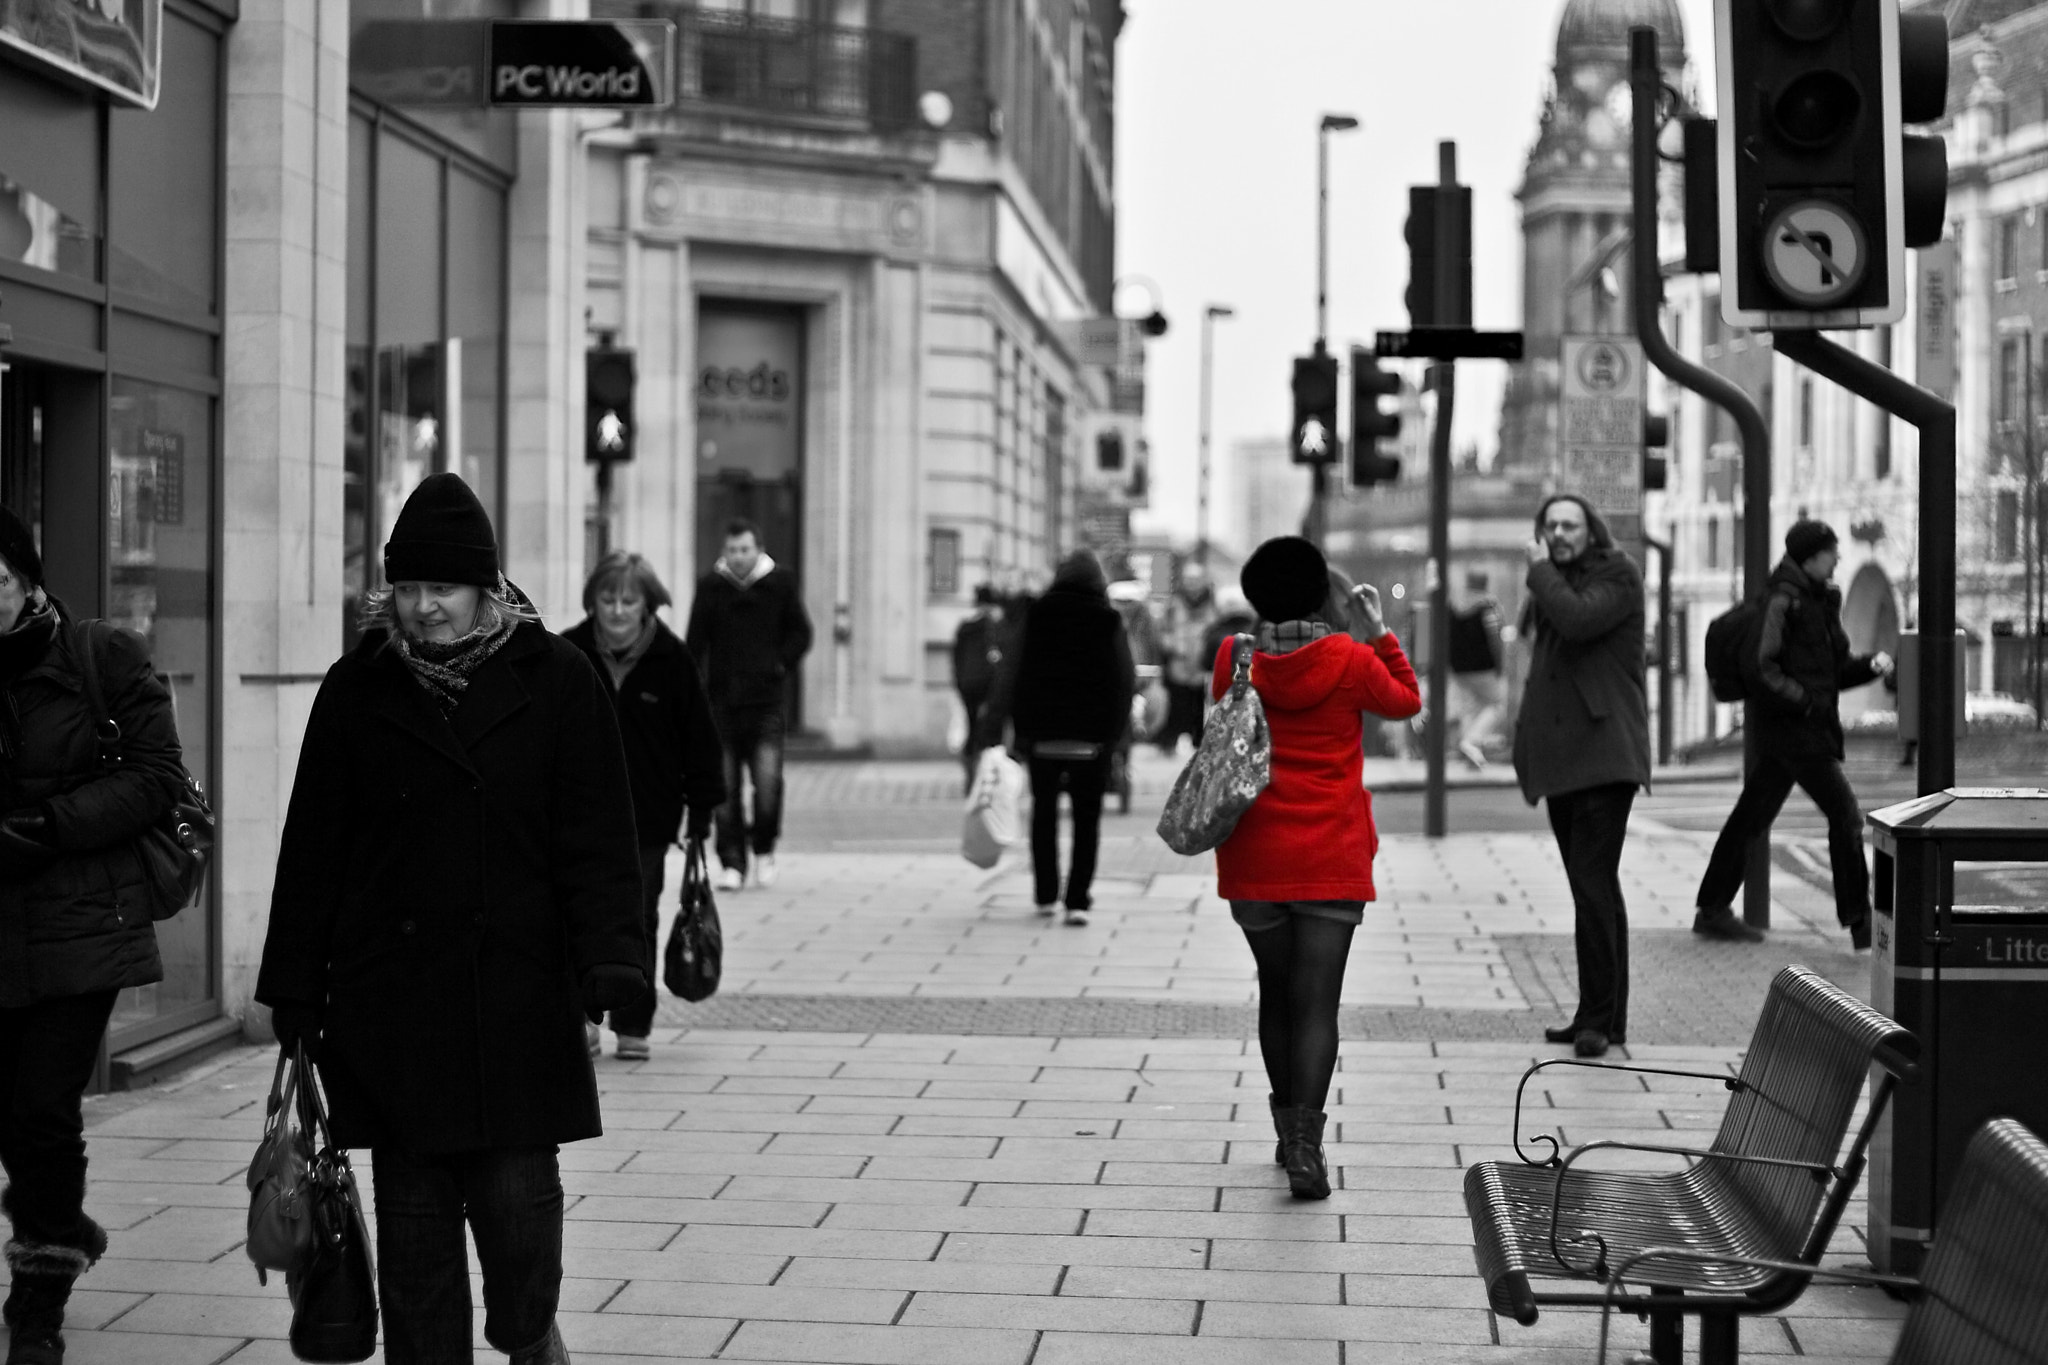 Photograph The Lady in Red by Mike Upshon on 500px